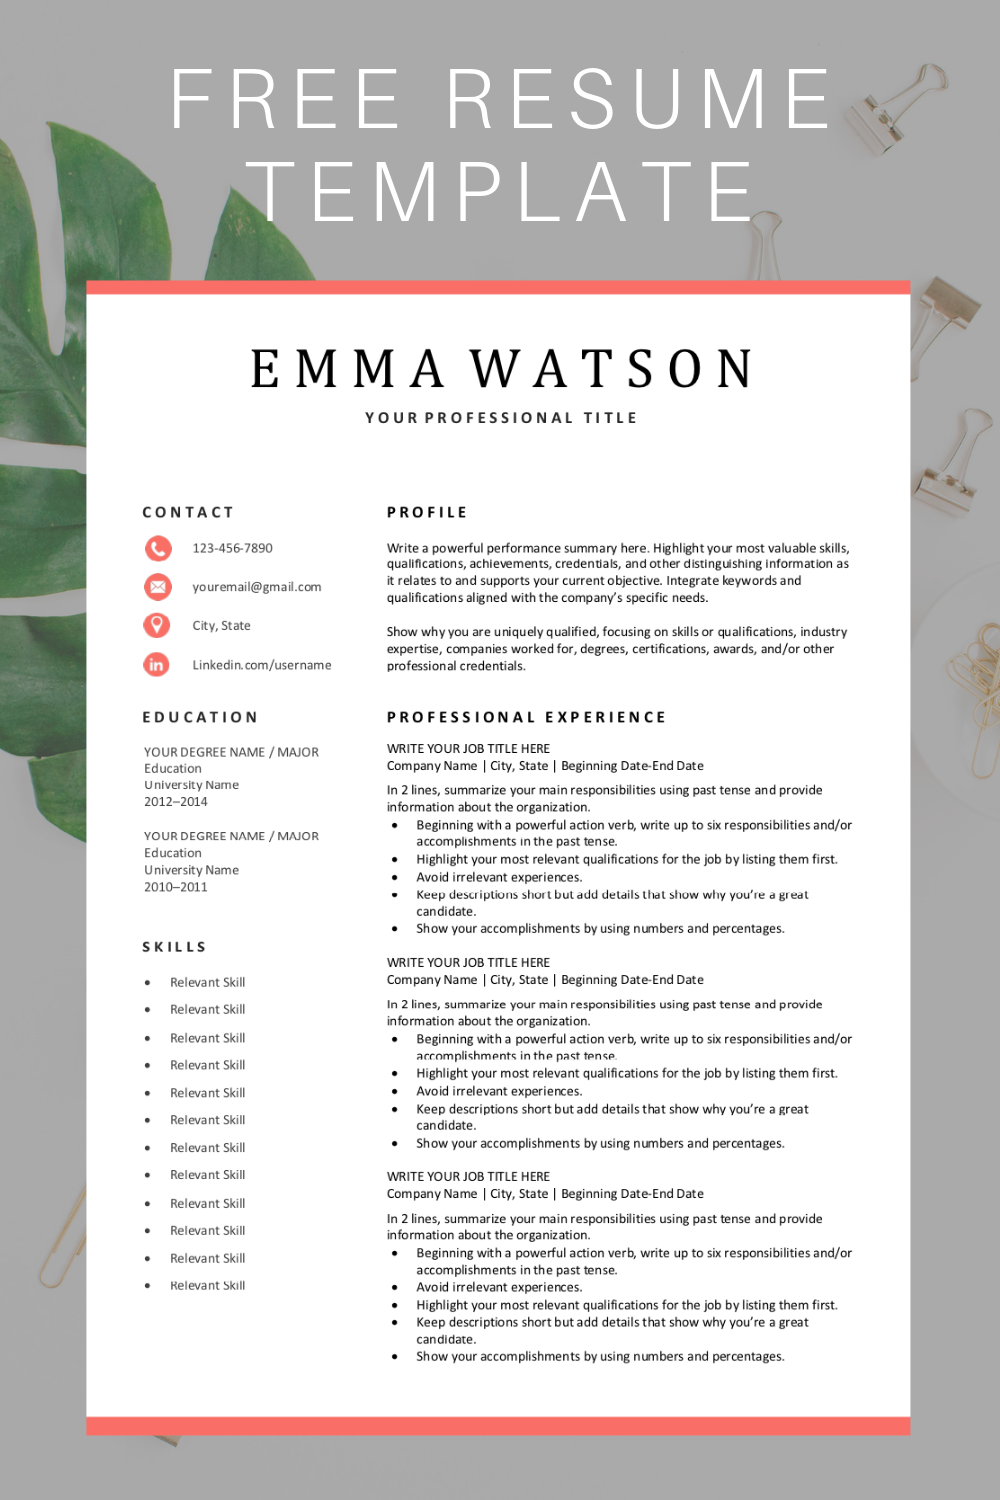 Simple Resume Template Download for Free (With images